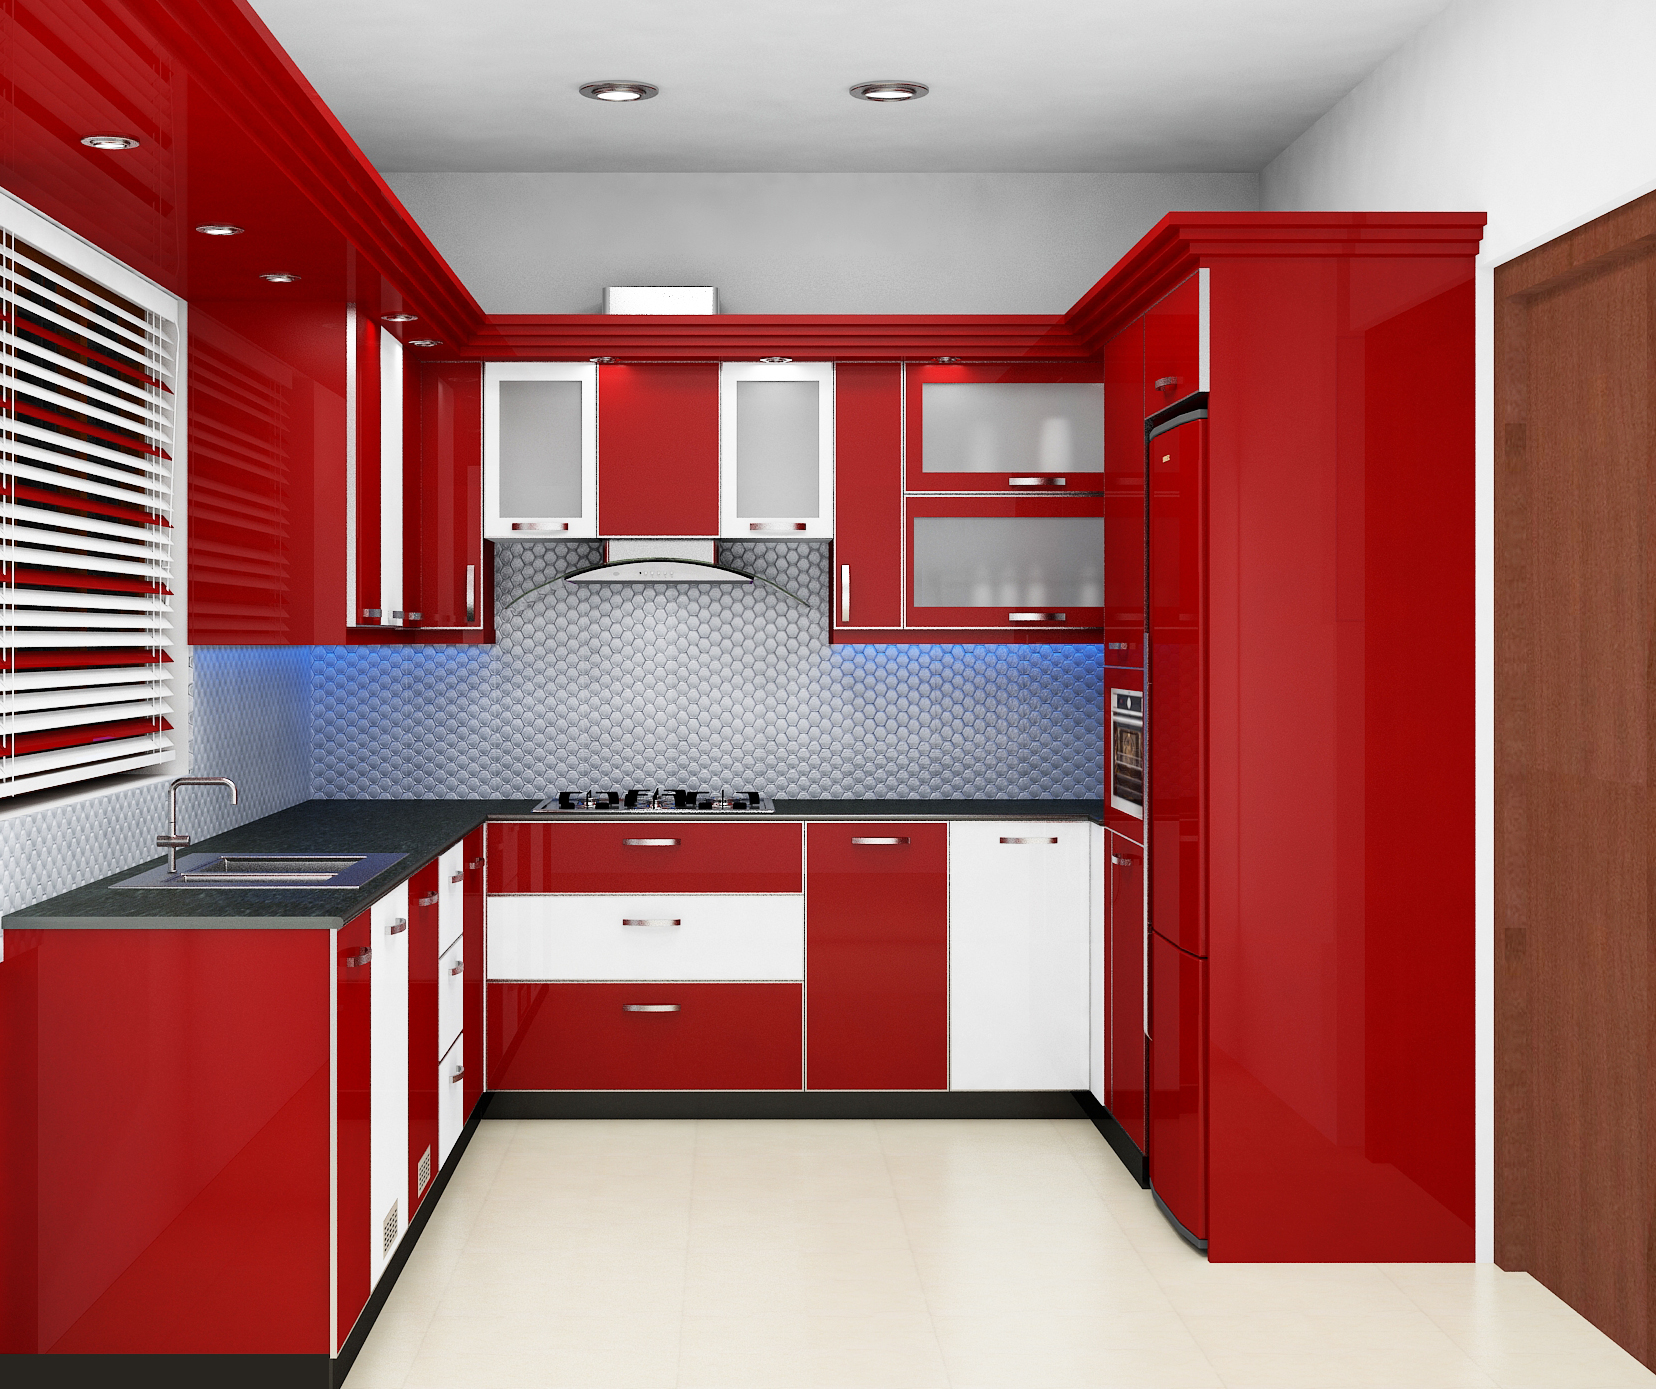 Interior Design Plans: Exemplary And Amazing Modular Kitchen Home Interior Design